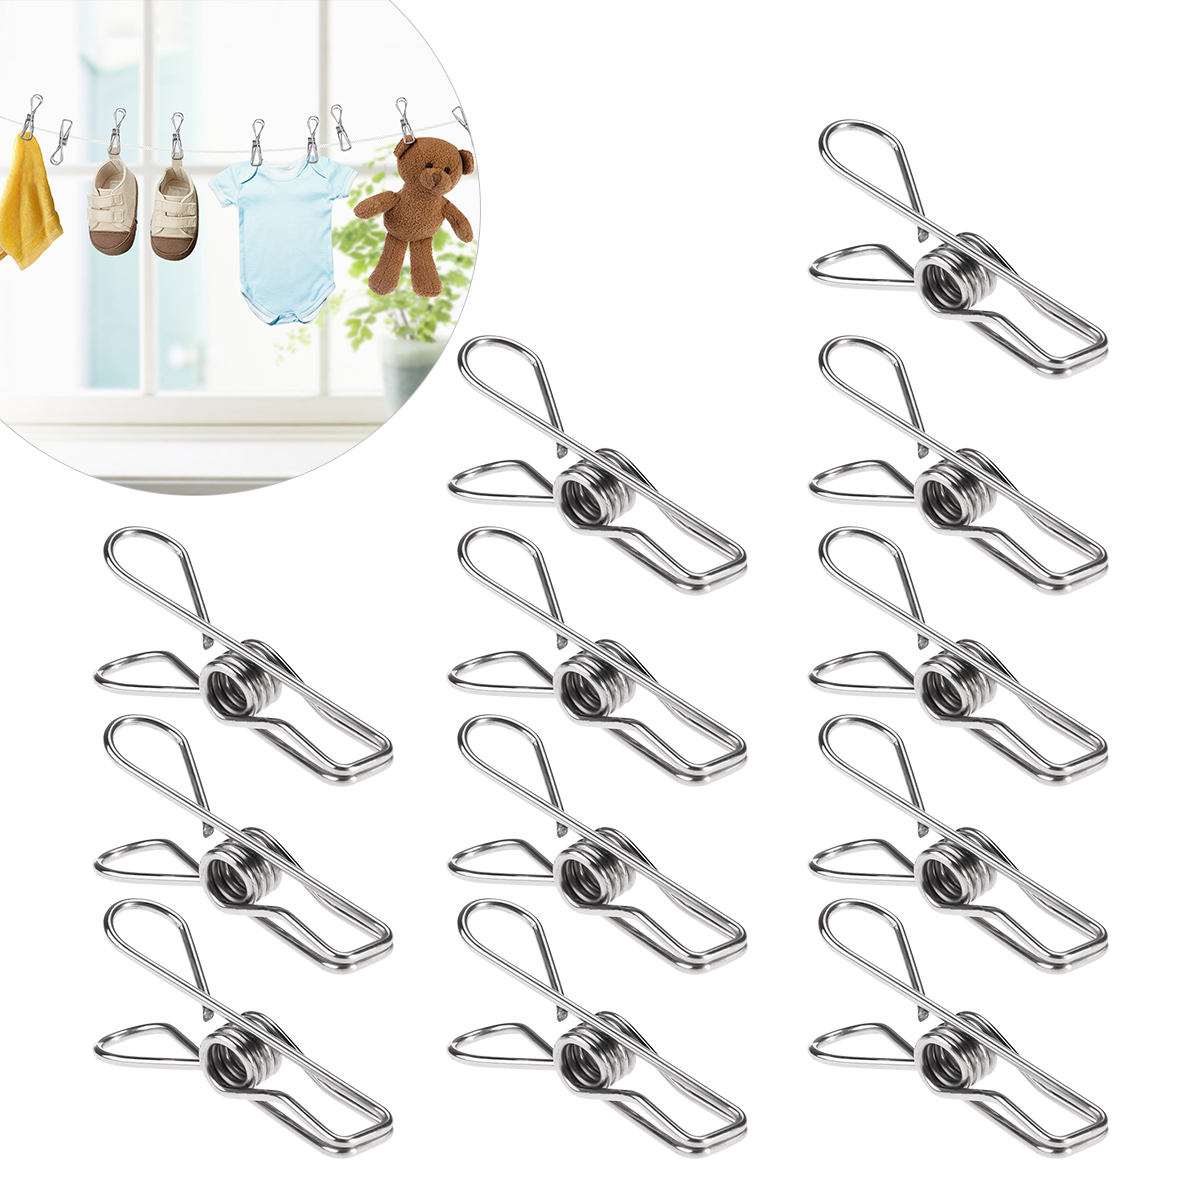 ROSENICE 20pcs Multipurpose Stainless Steel Clips Dry Clothes Pins Craft Decoration Clips Pegs Clothes Hanger Organizer